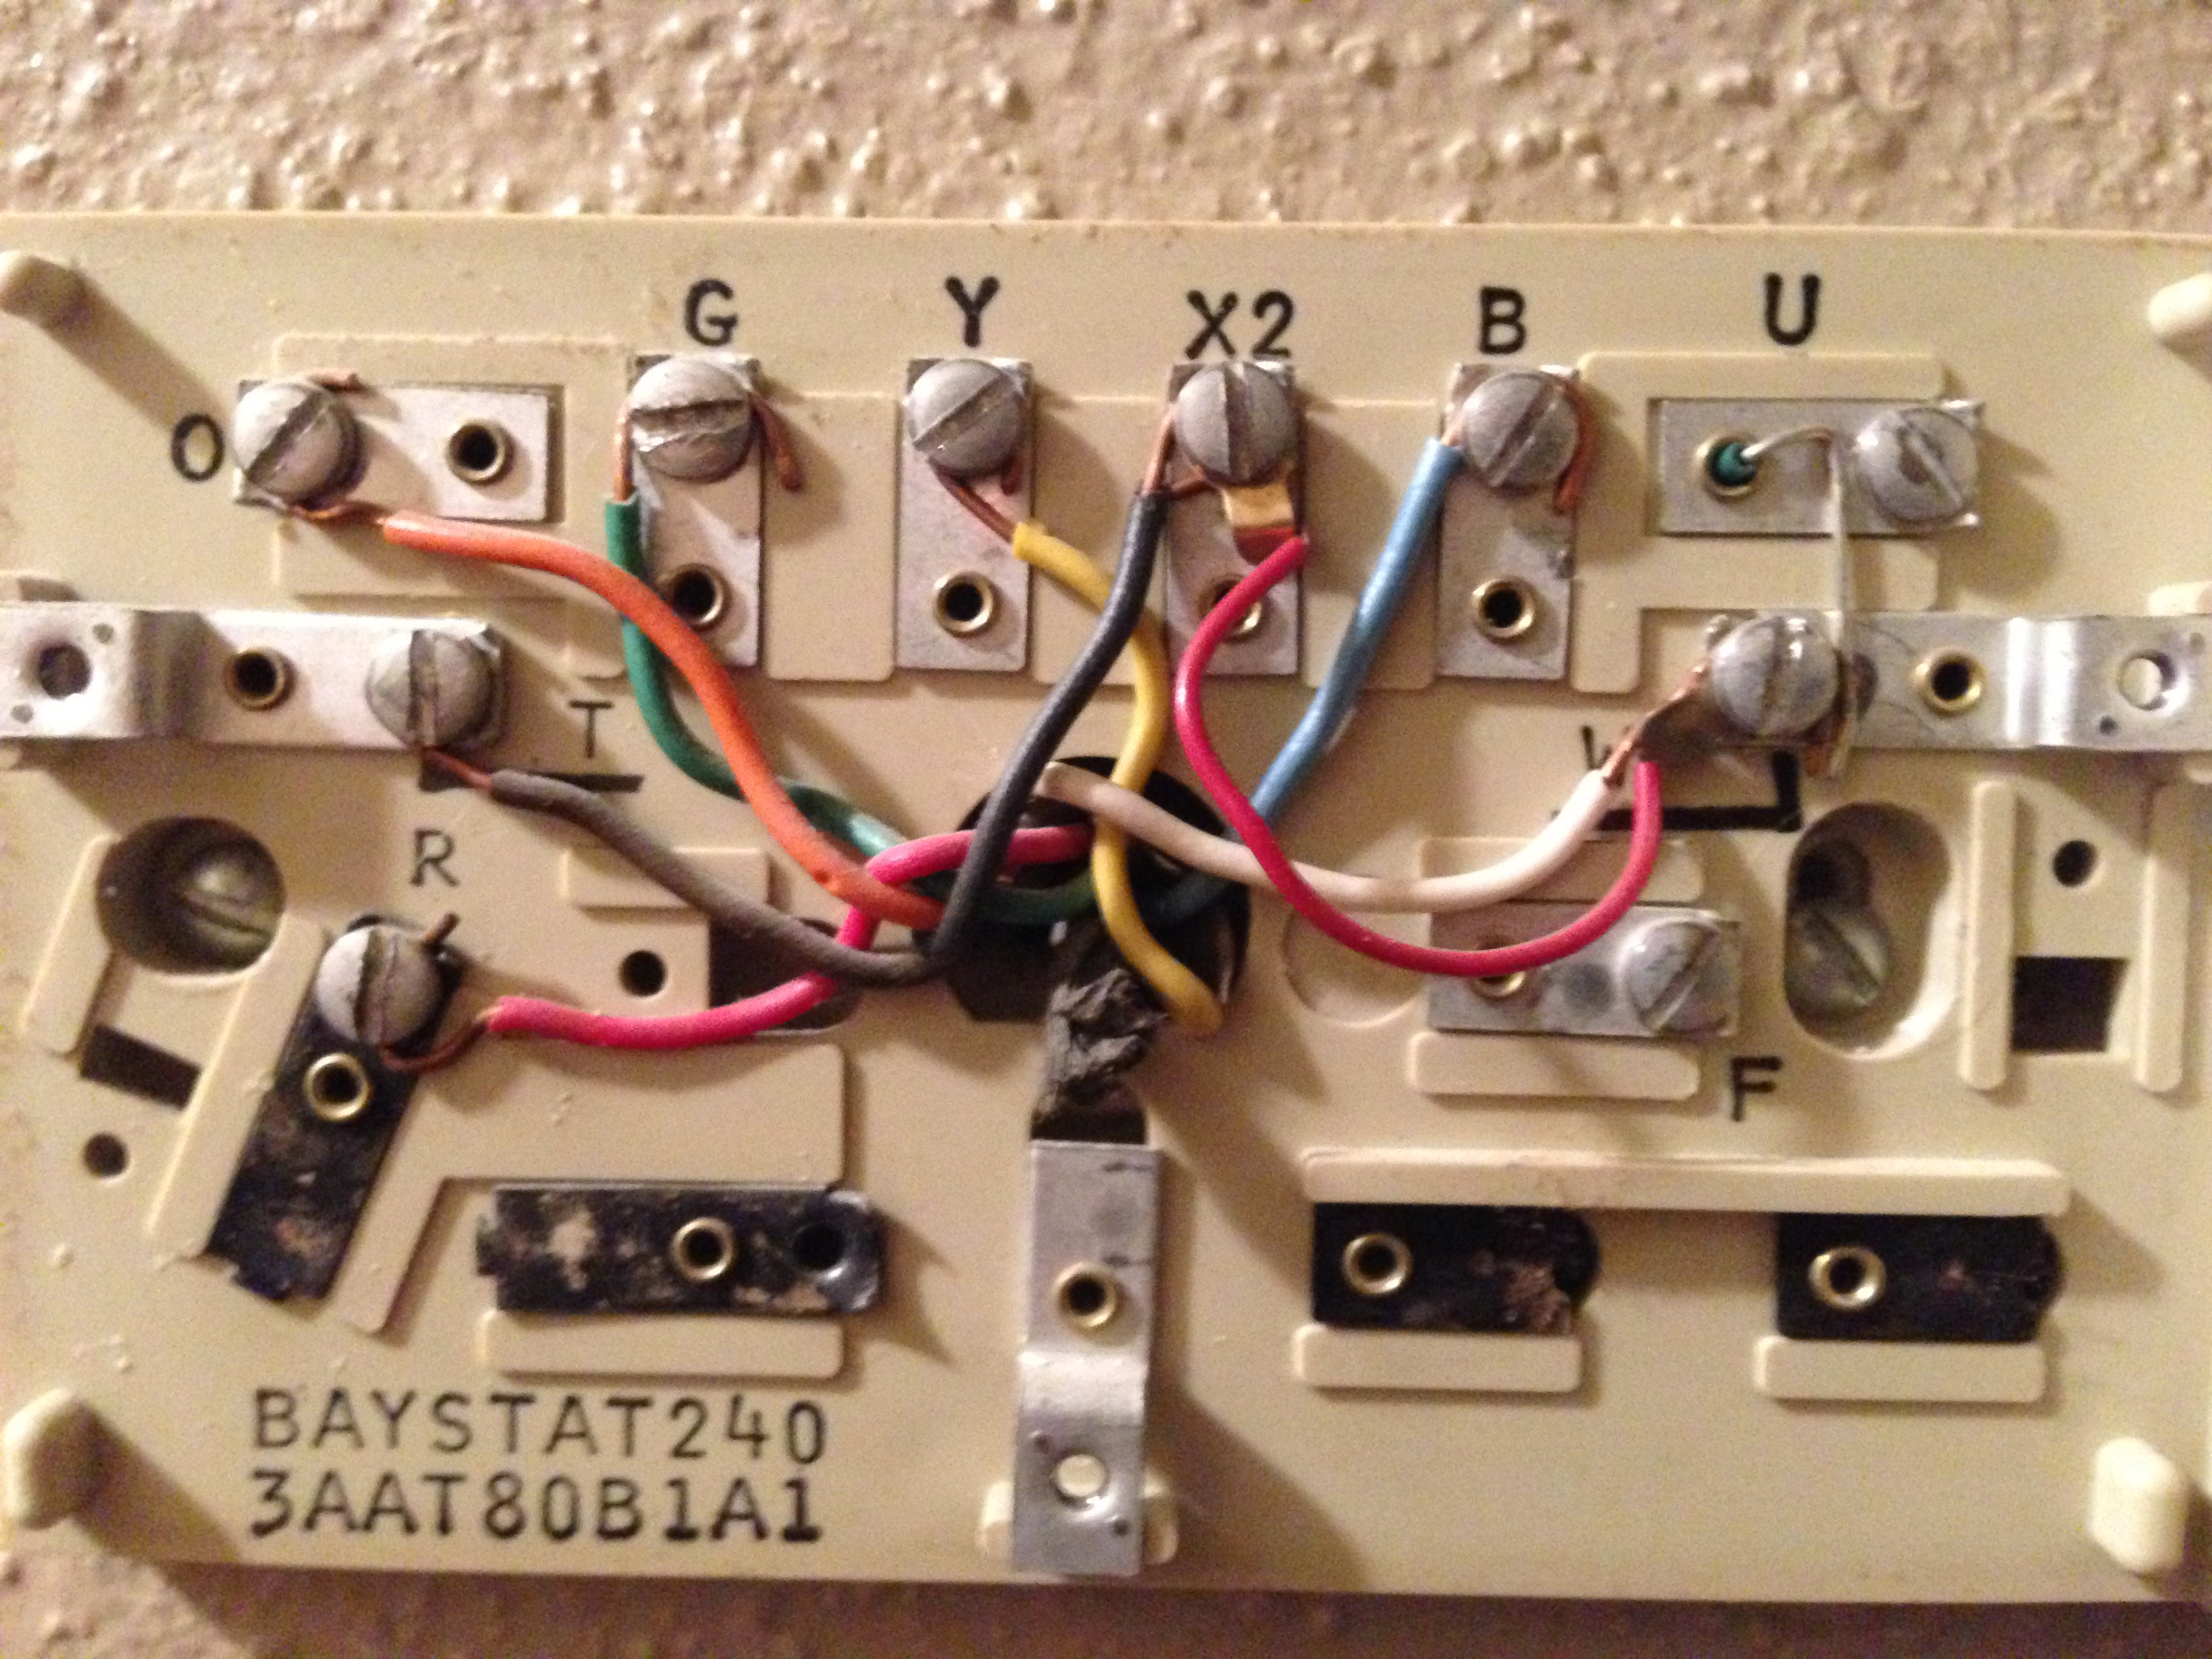 Replace The Trane Baystat 240 With Nest - Trane Baystat240 Wiring Diagram Nest